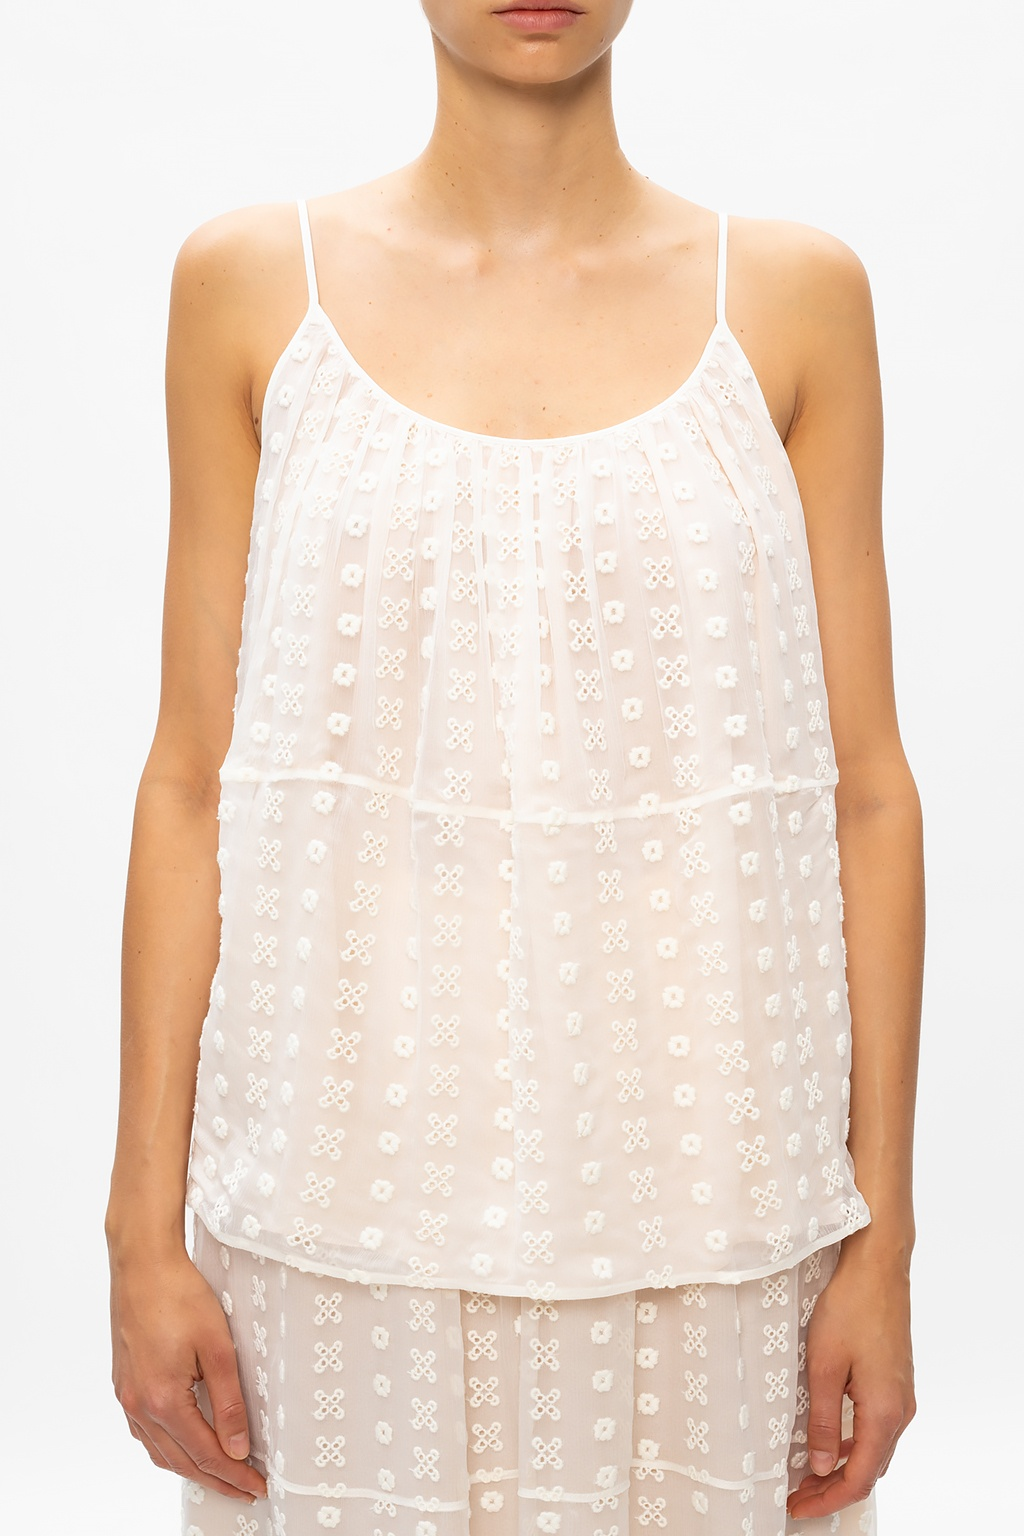 Chloé Slip top with openwork details